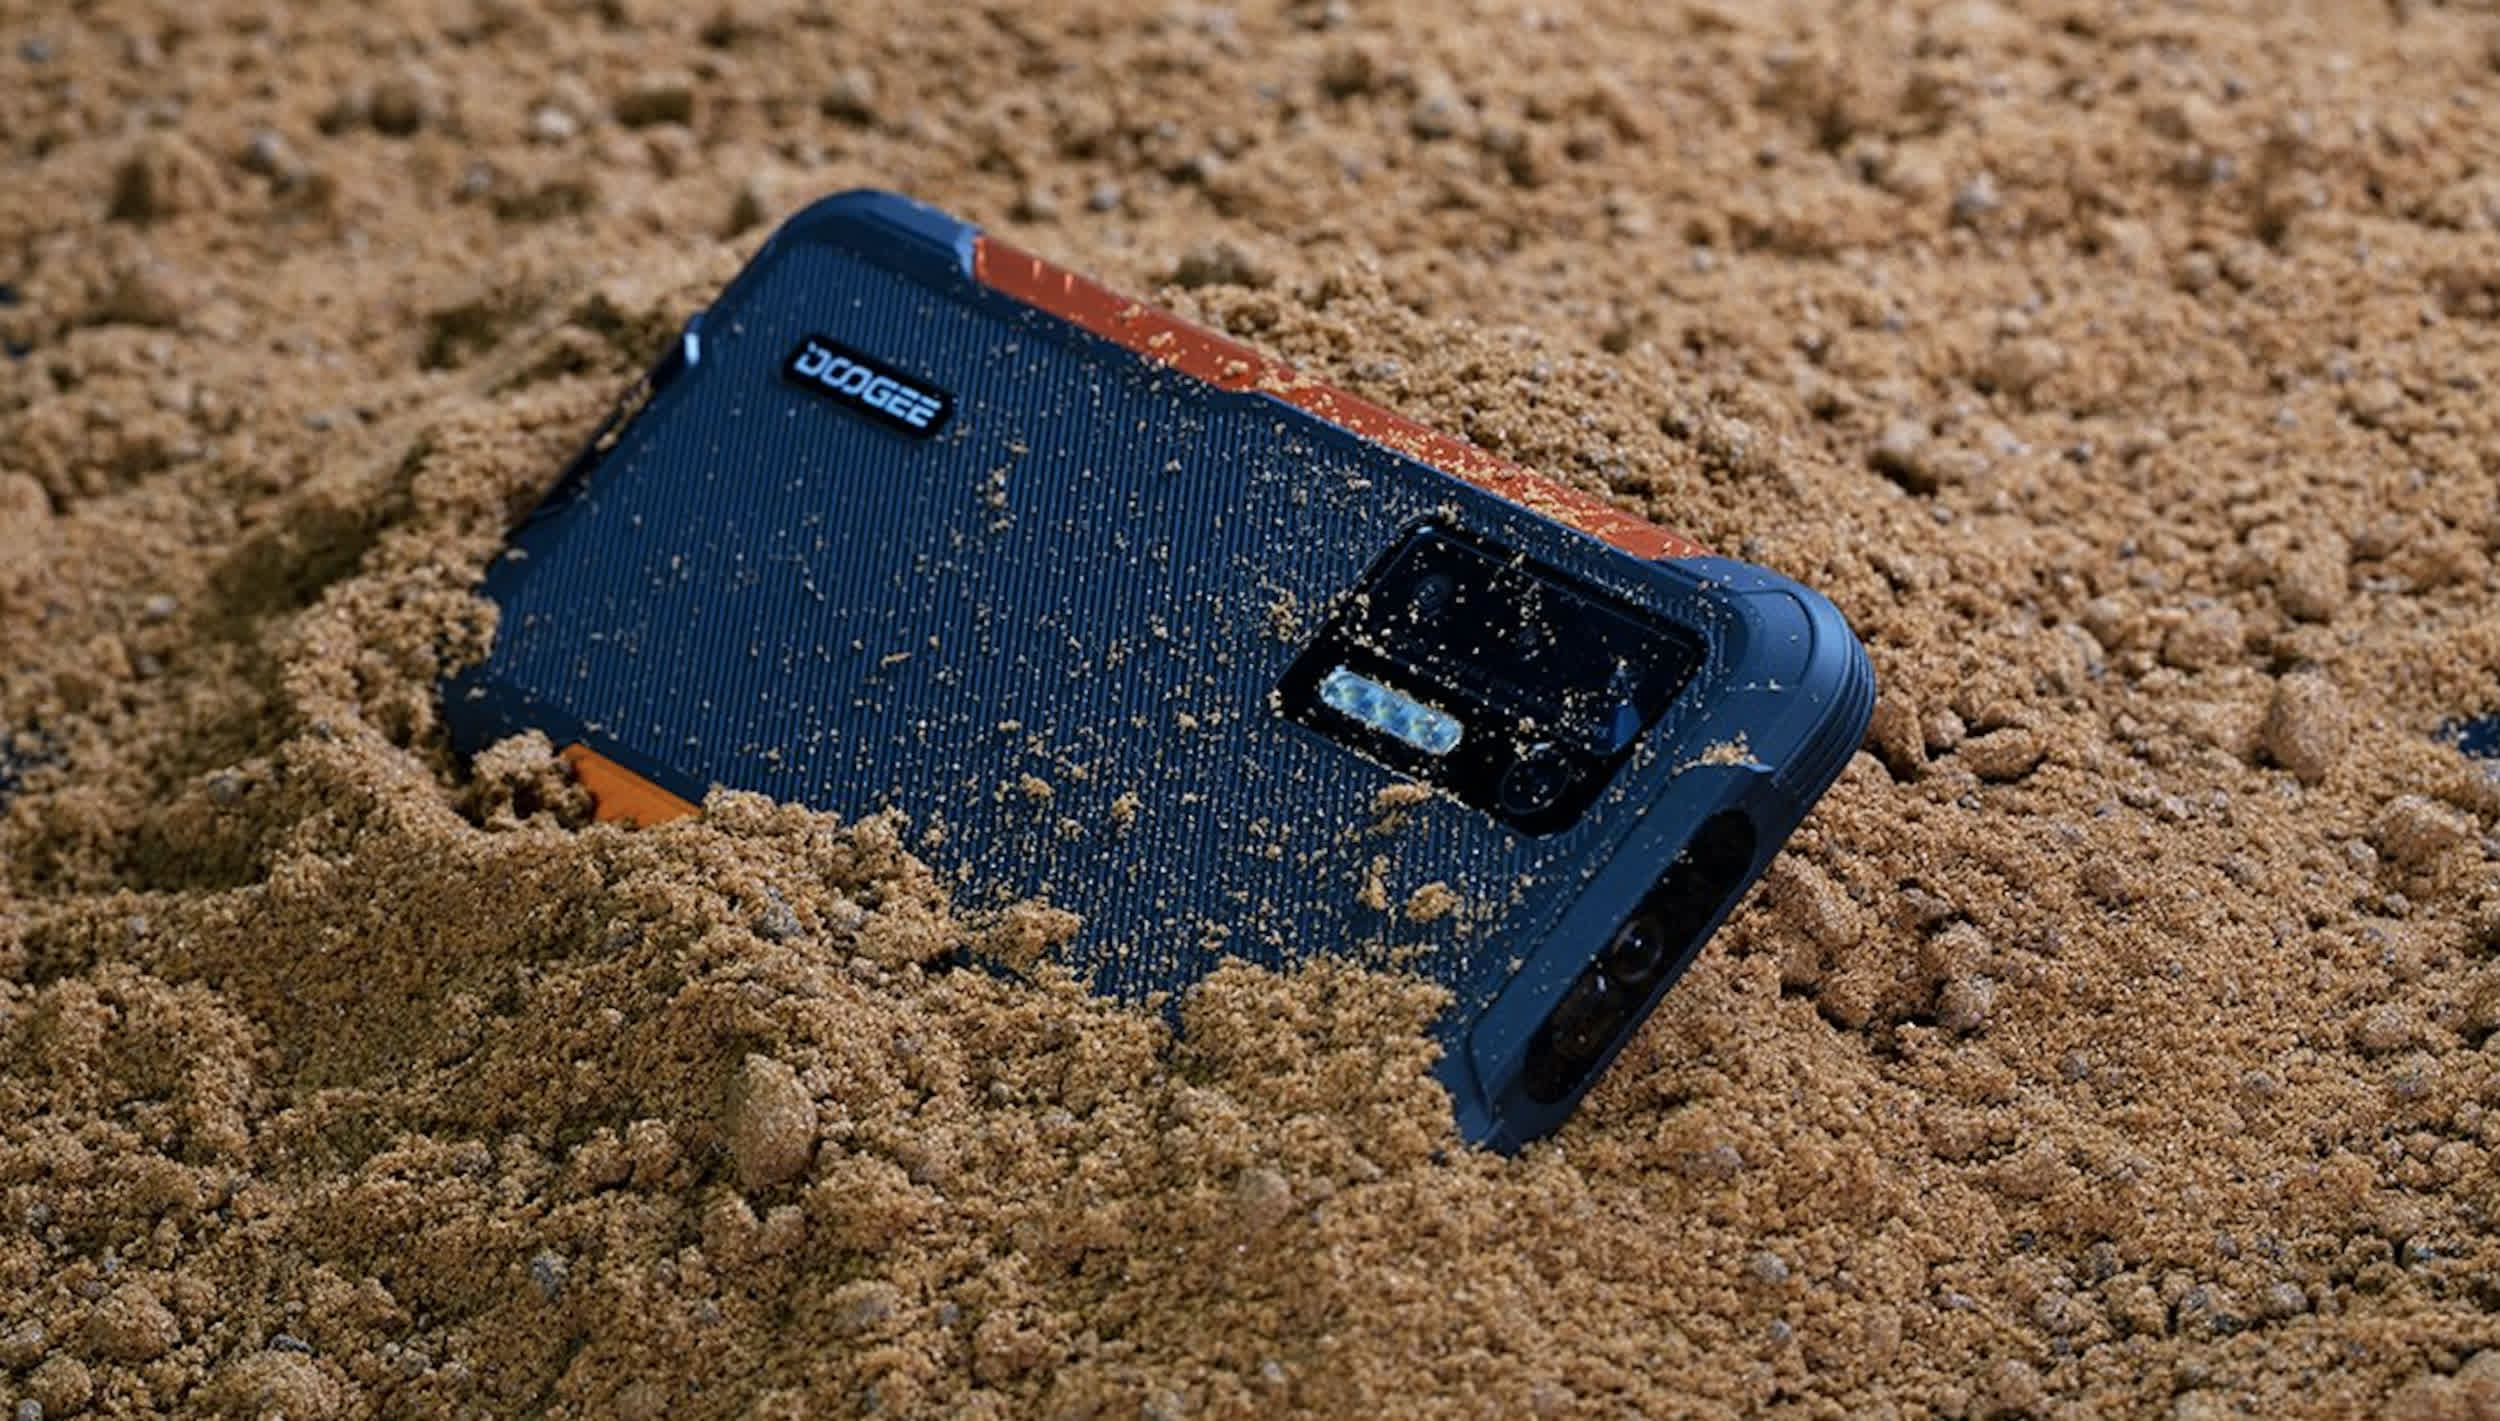 Doogee's rugged S97 Pro packs an 8,500mAh battery and a laser rangefinder